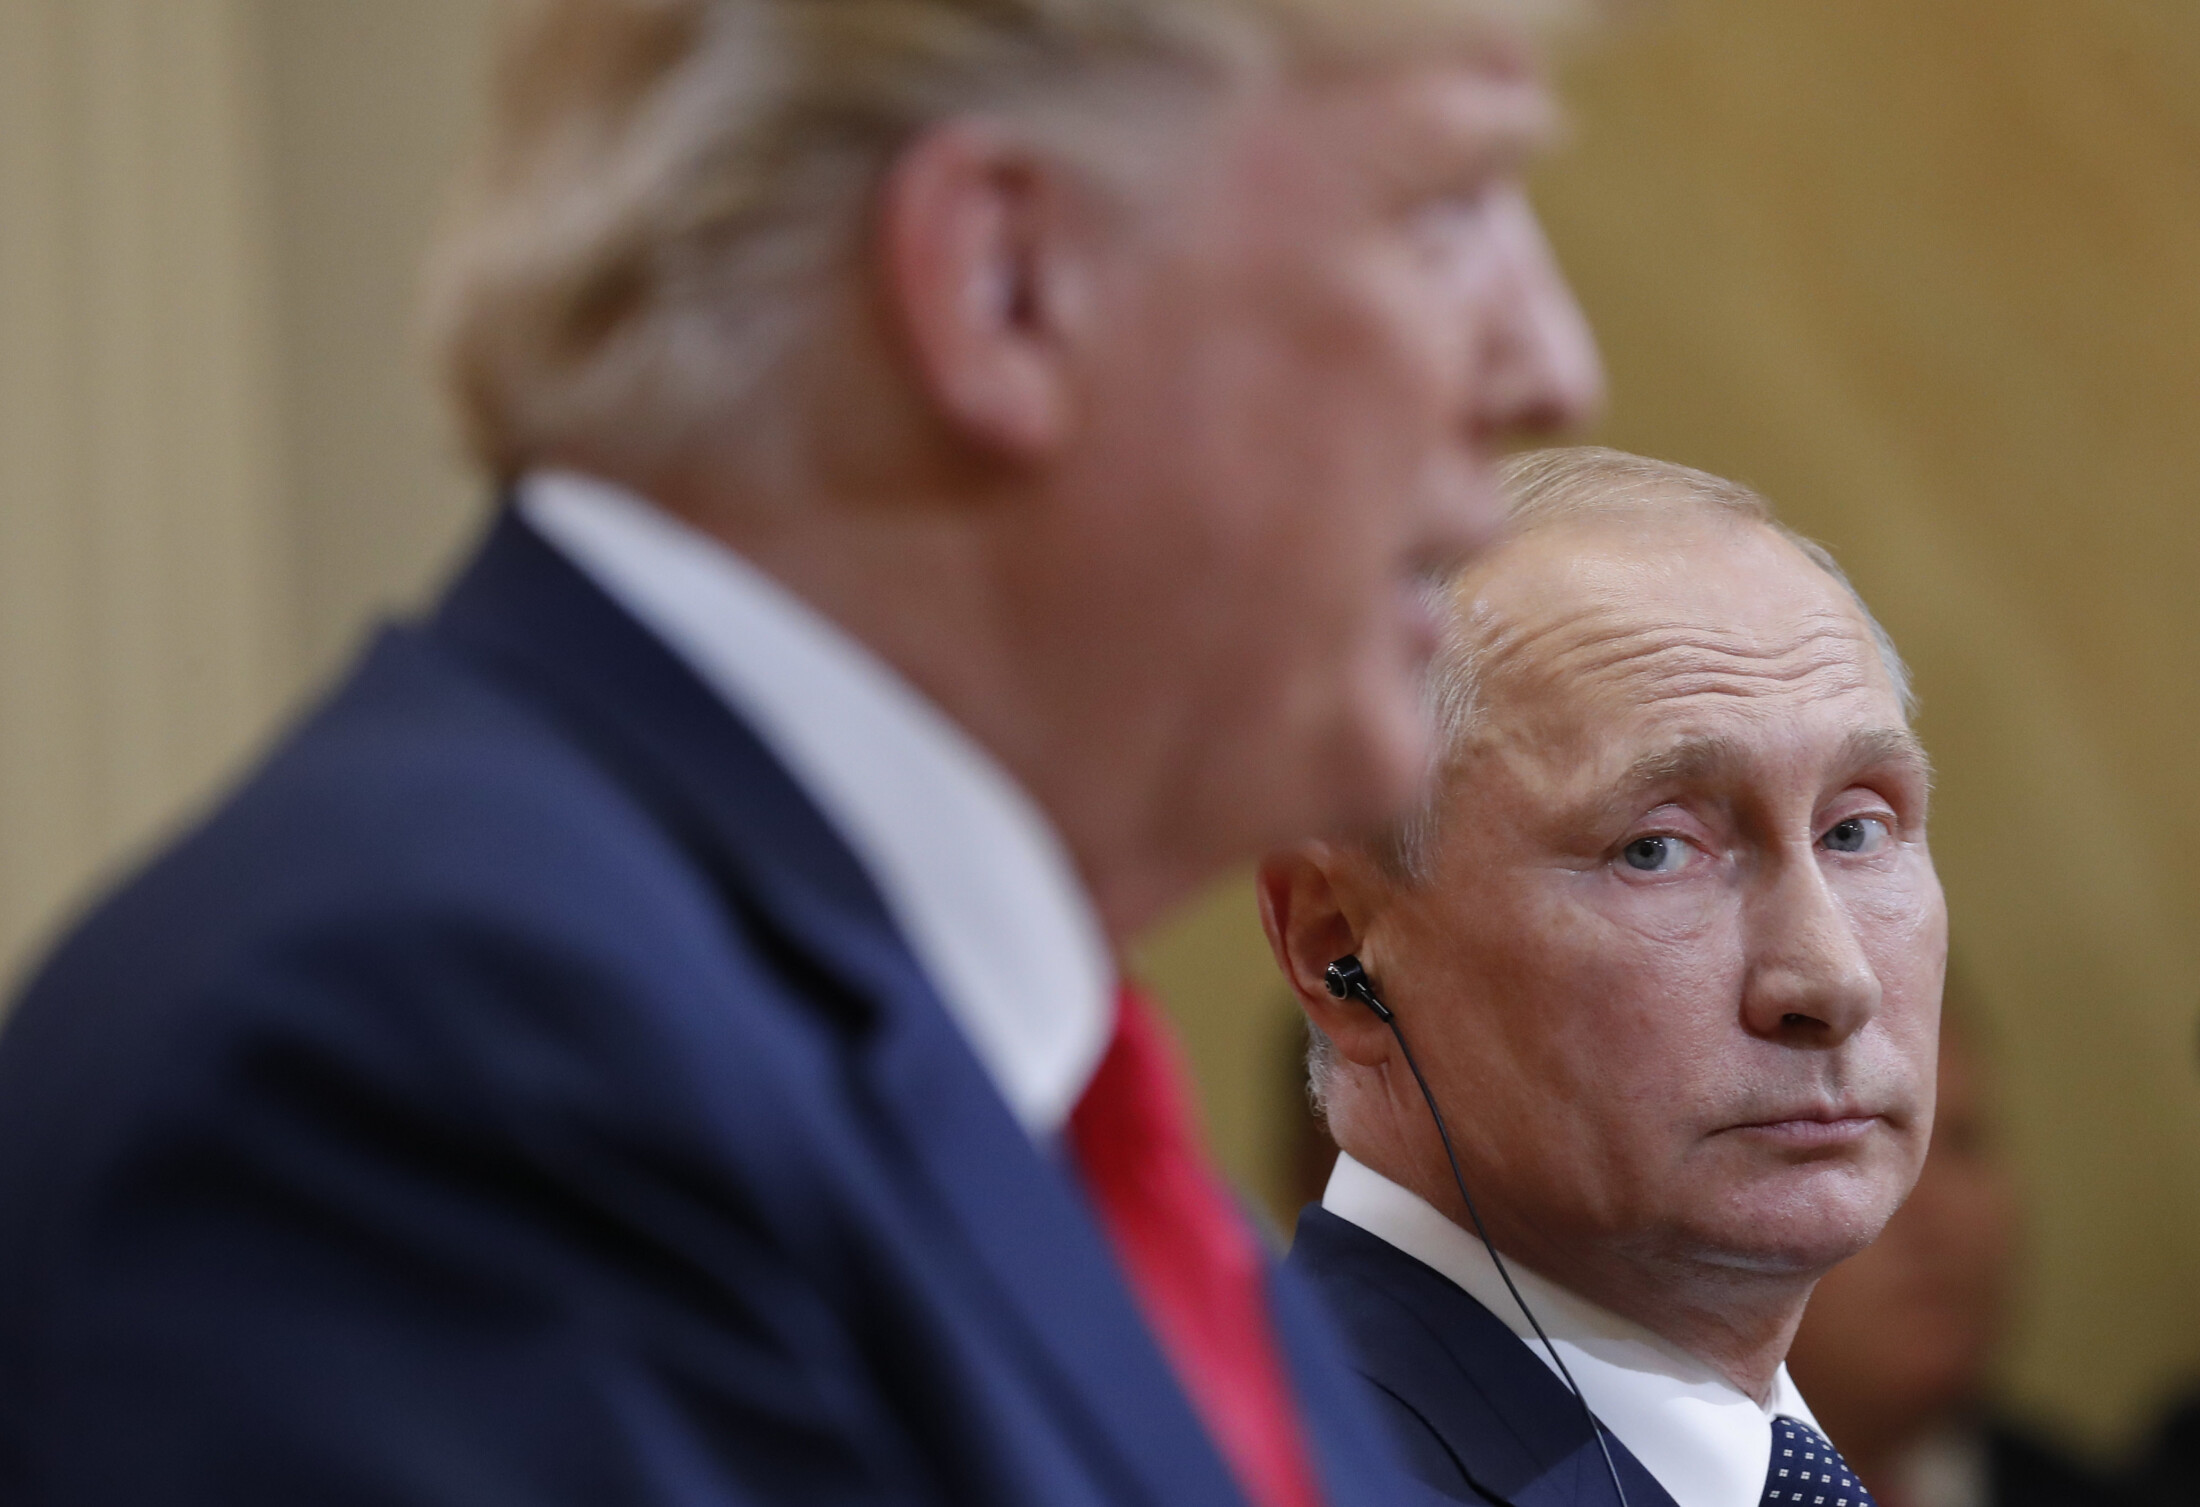 Russian President Vladimir Putin looks toward U.S. President  Trump during their joint news conference at the Presidential Palace in Helsinki, Finland, in 2018.